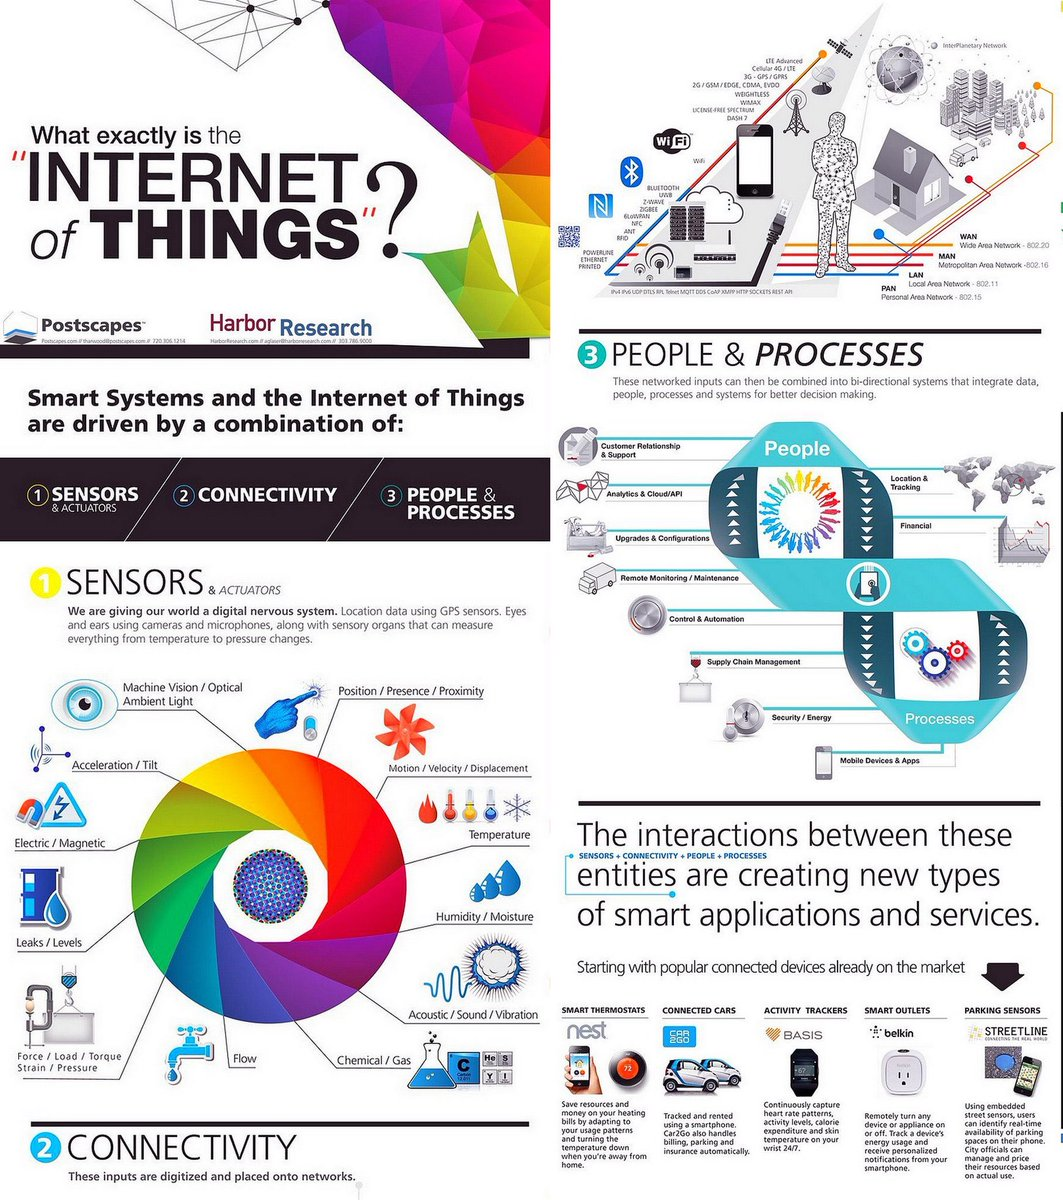 What is the #internet of things?#IoT #DigitalMarketing  #ContentMarketing #defstar5 #makeyourownlane #Marketing #SEO #startups #BigData #Smm<br>http://pic.twitter.com/nn0c80ysWT